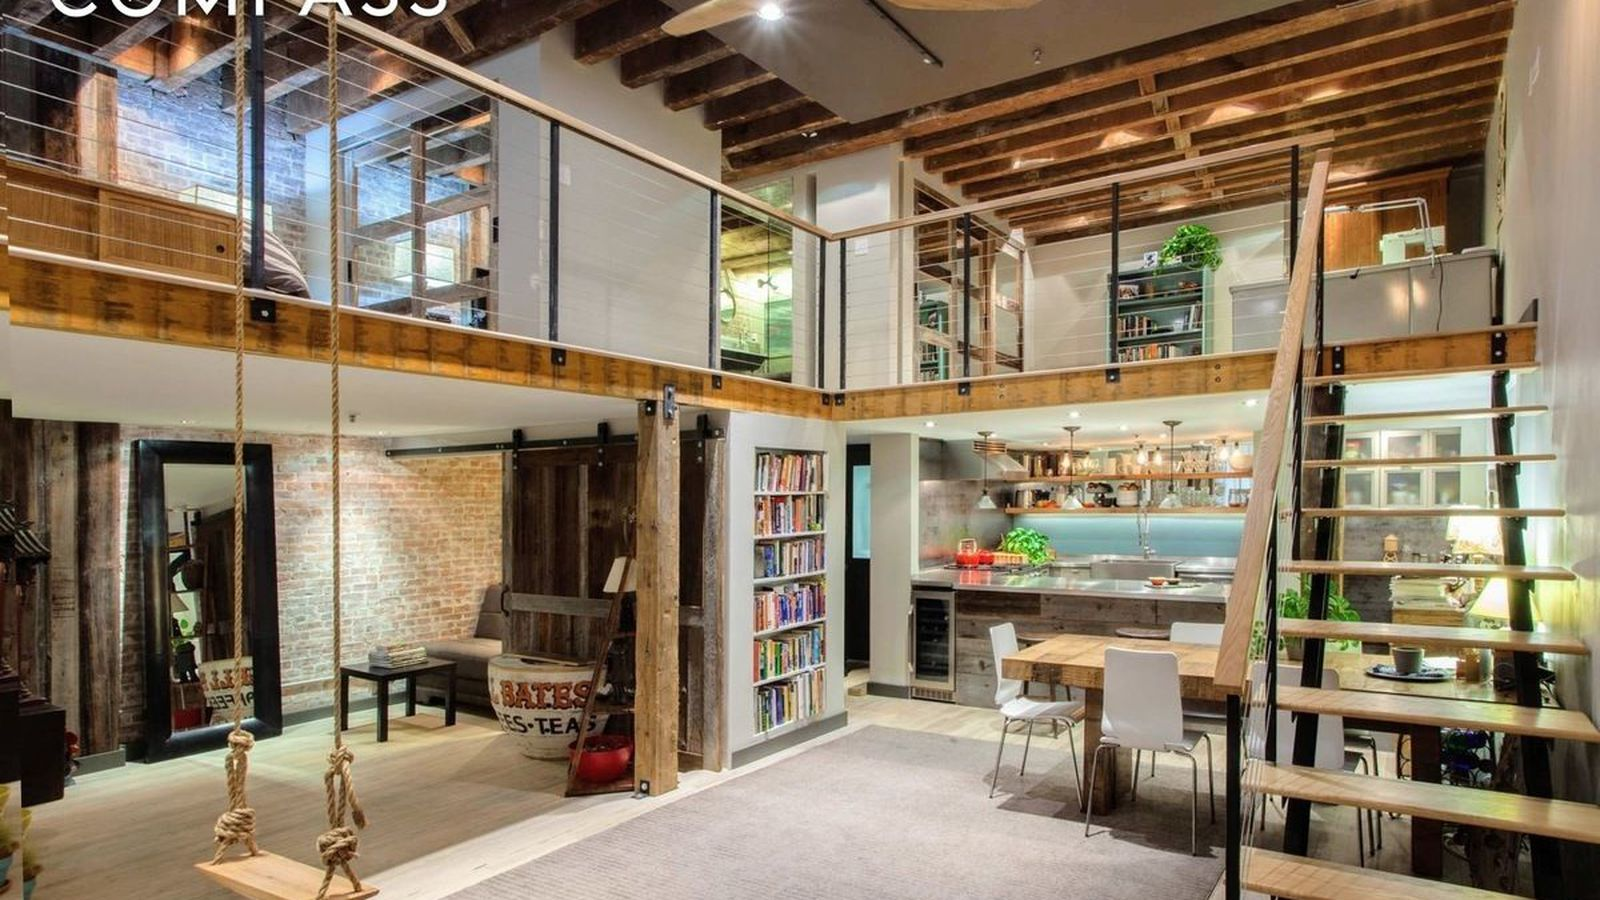 Renovated tribeca loft with rustic touches wants for Tribeca property for sale